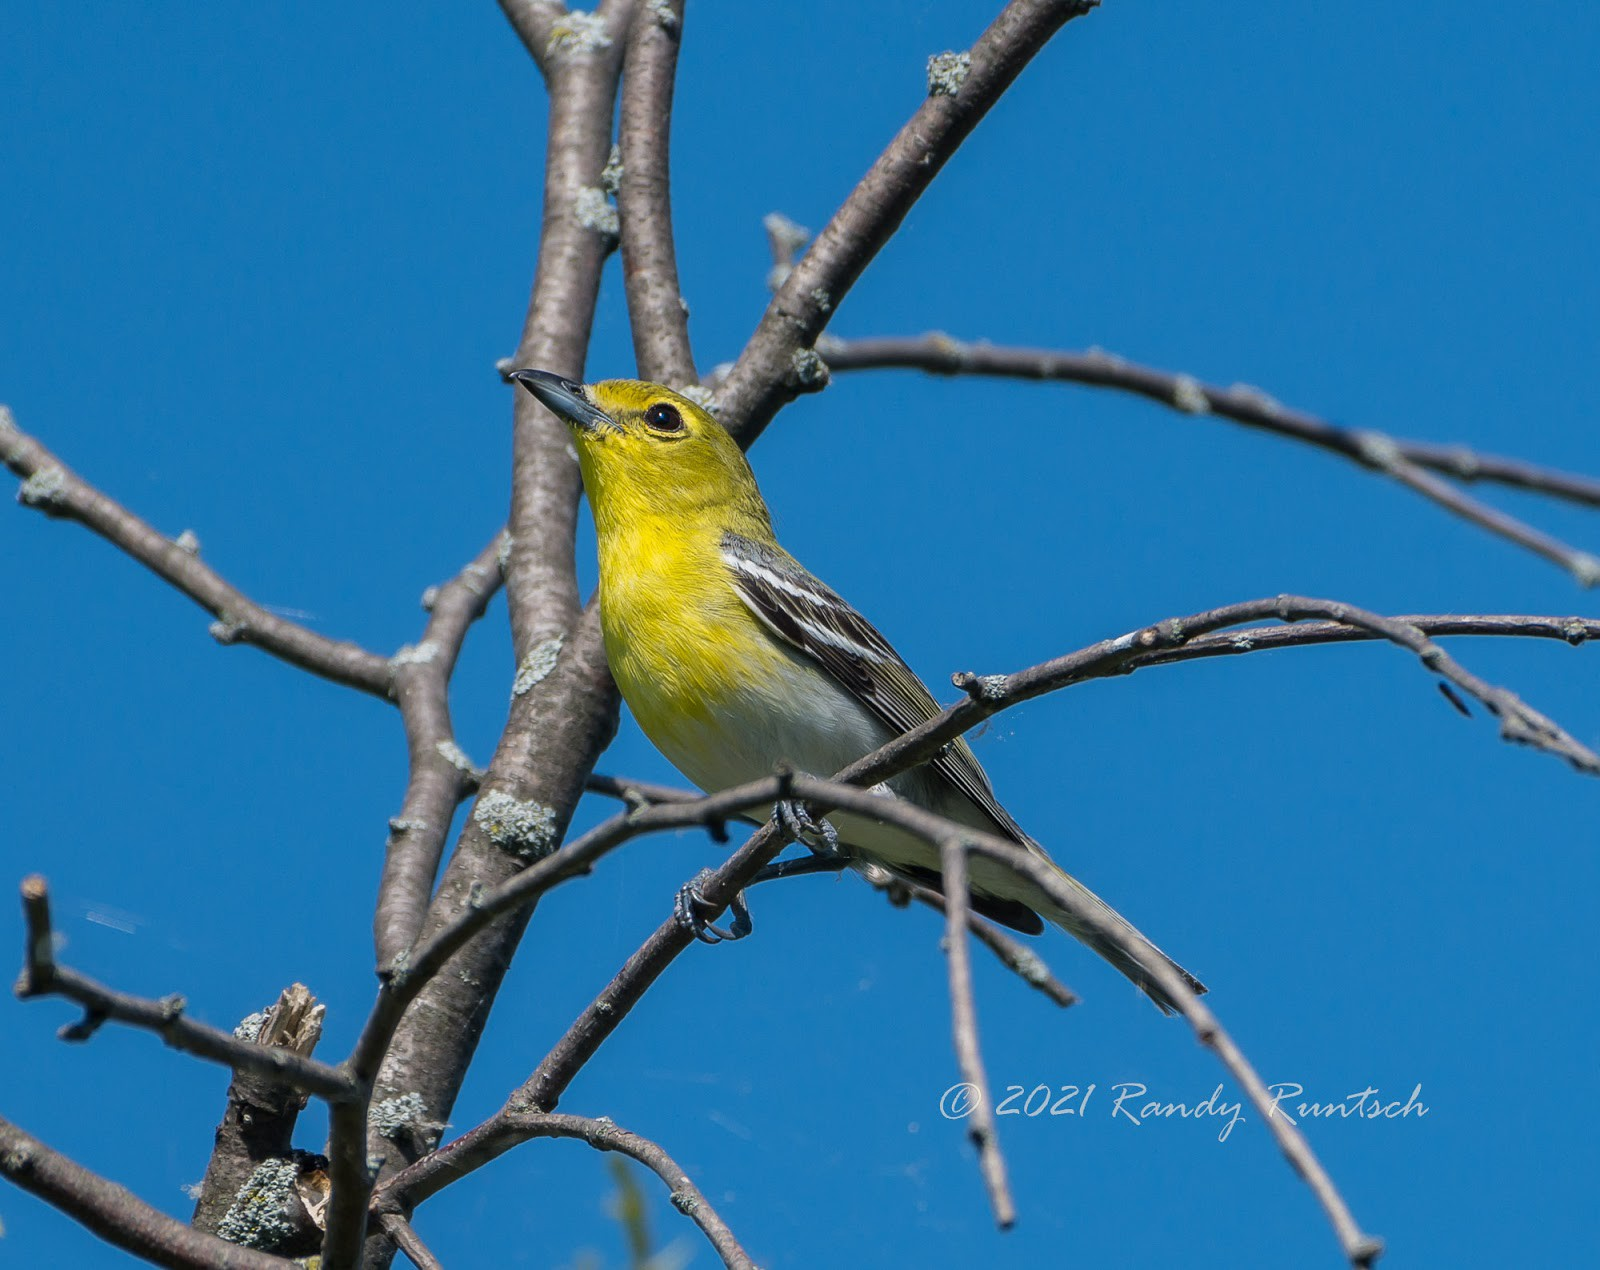 Yellow-throated vireo. Photo by the author.